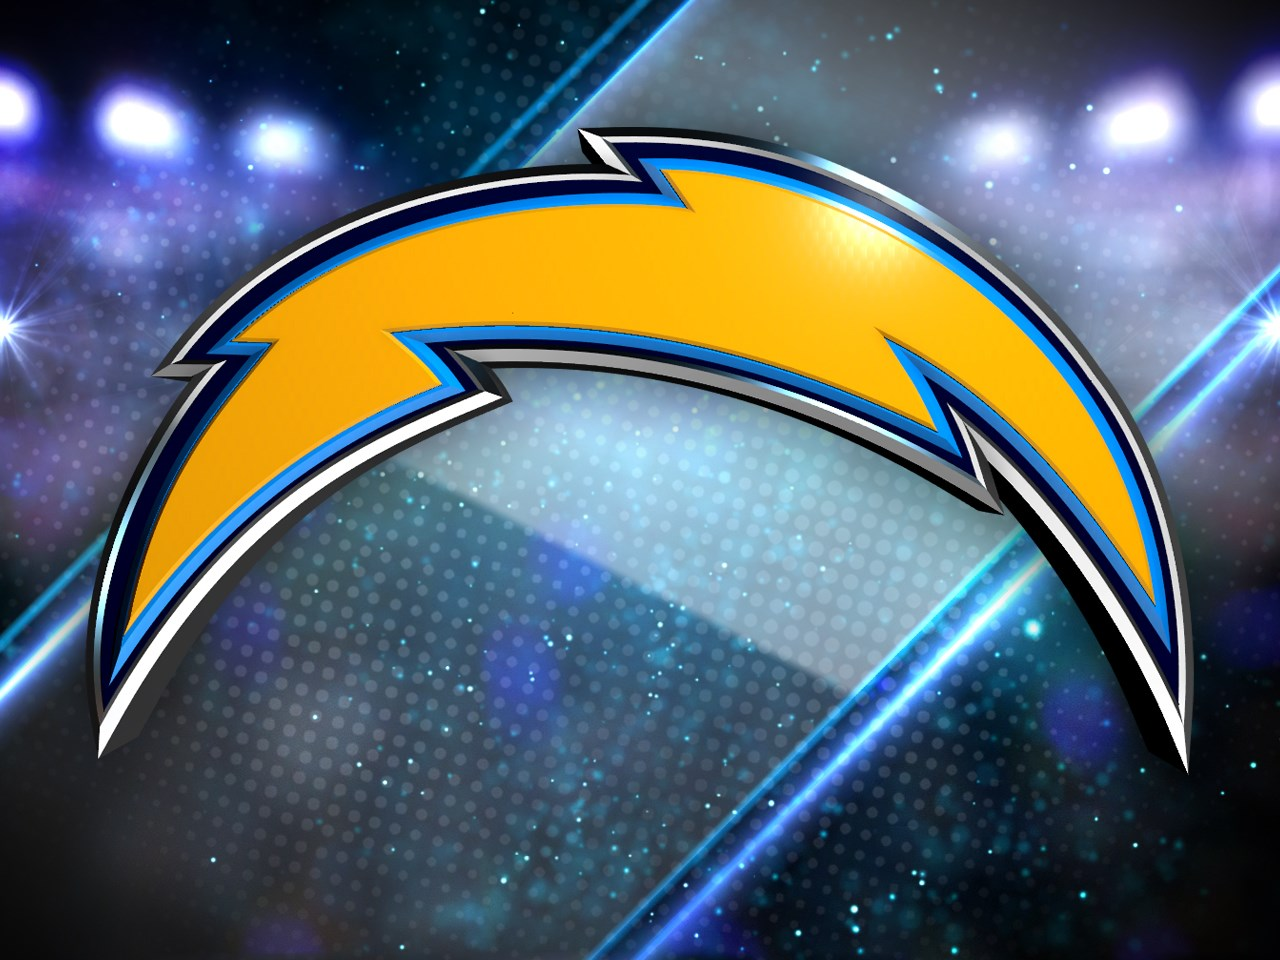 L.A. Chargers Team With Estrella Media for Spanish-Language Coverage